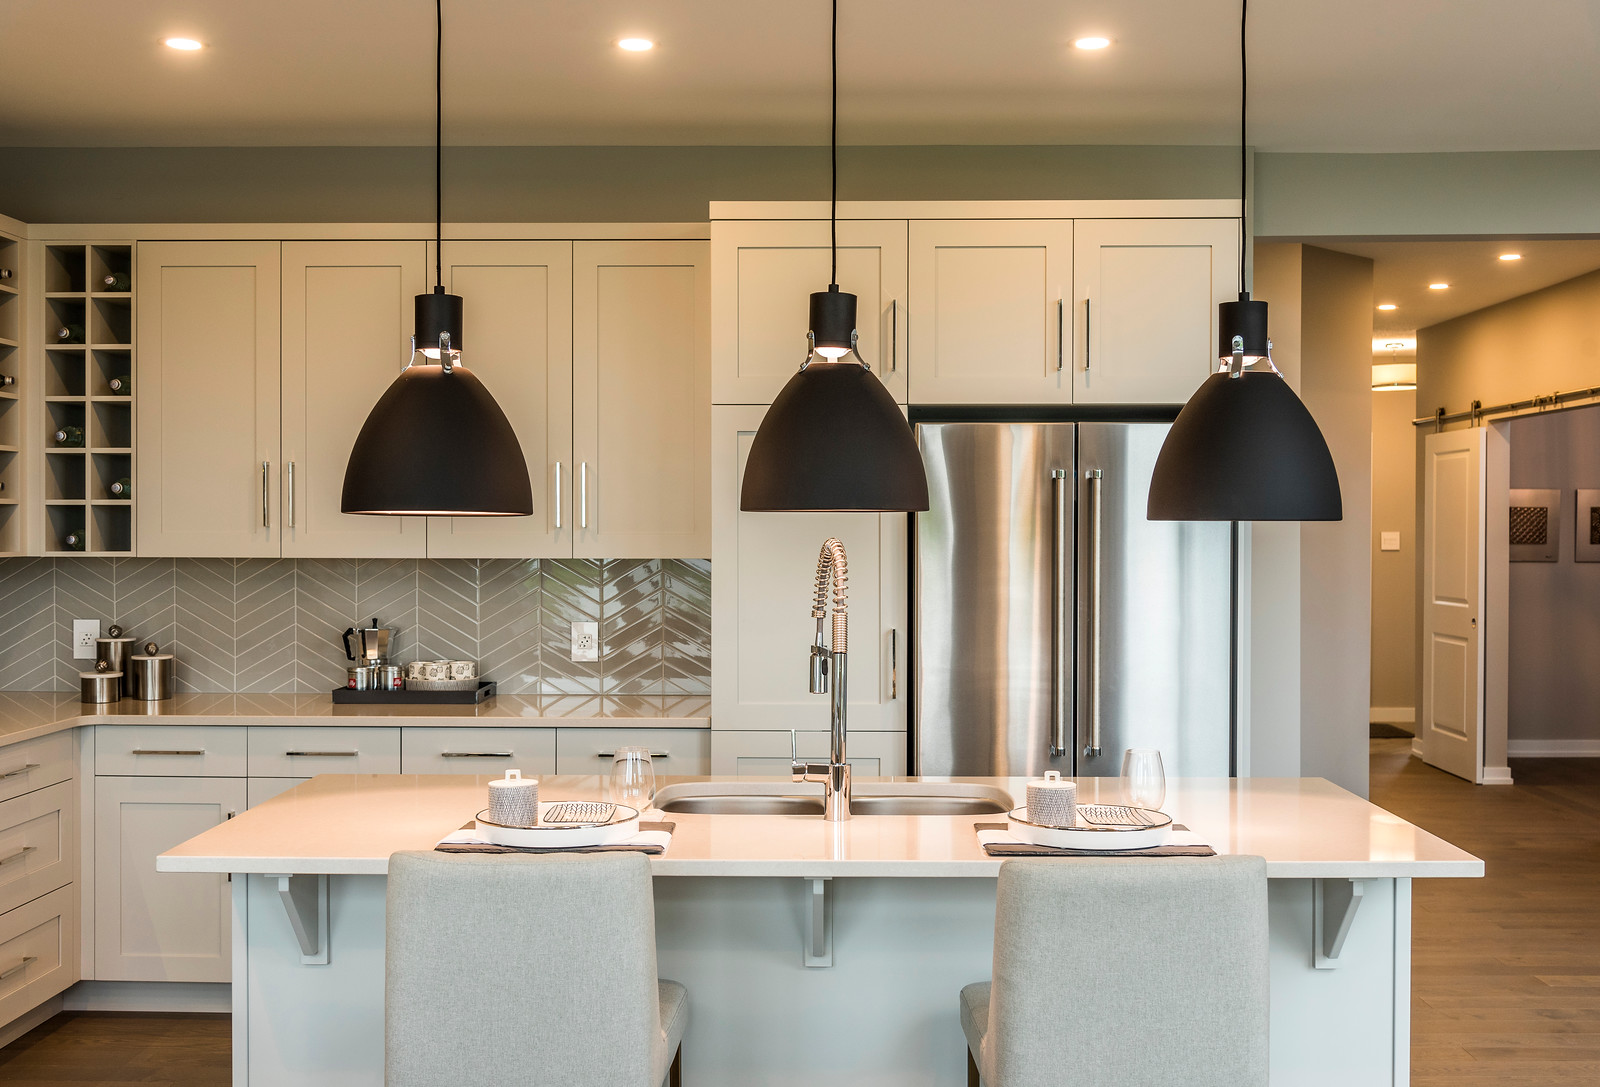 A new-build by Cardel Homes featuring Deslaurier cabinets in Fossil frey